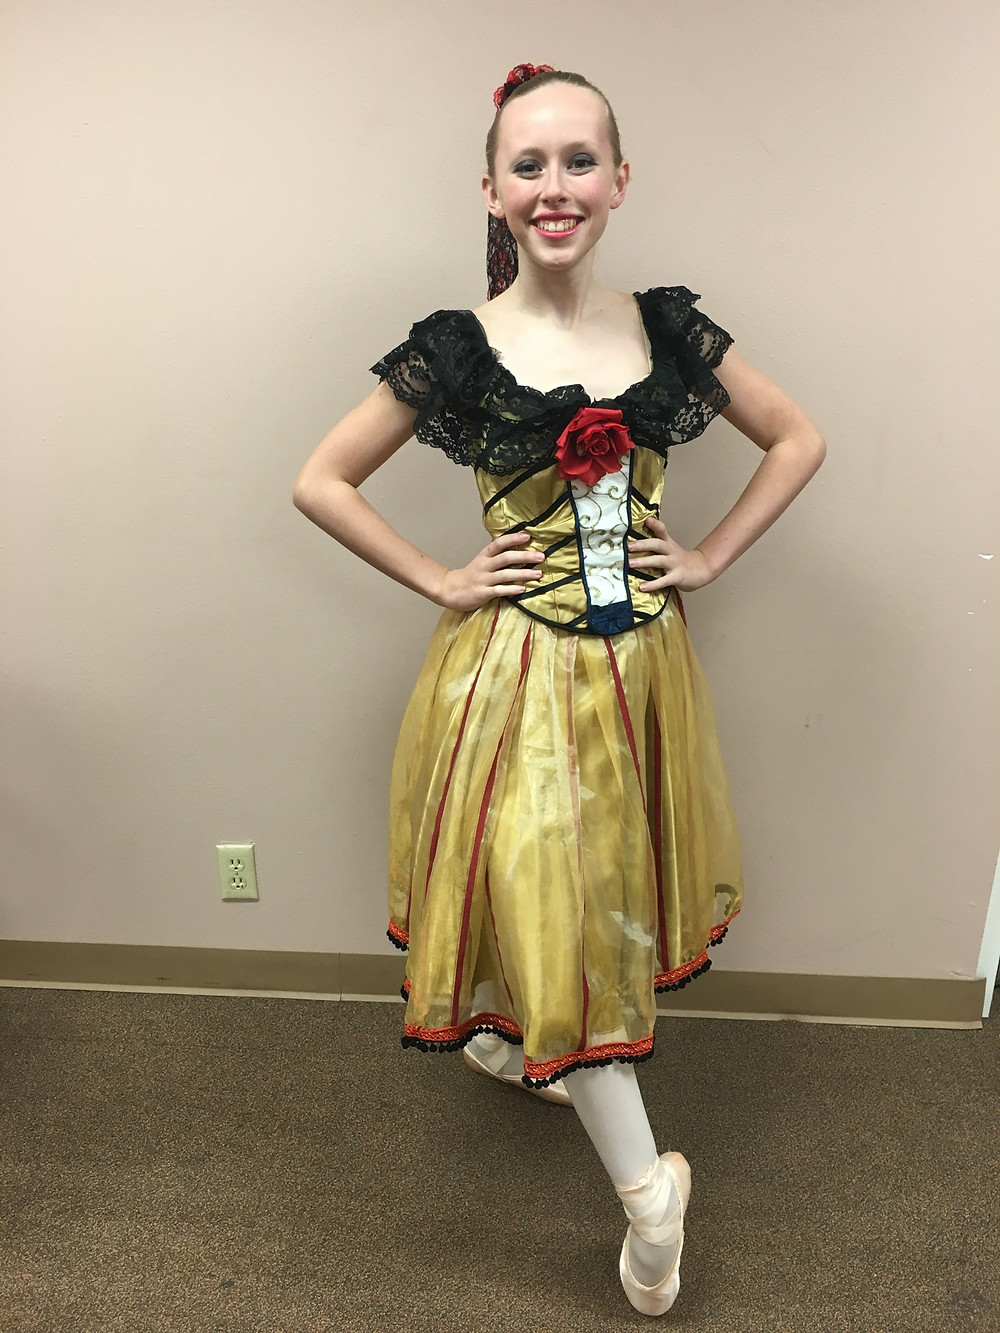 Maddy as Spanish divertissement